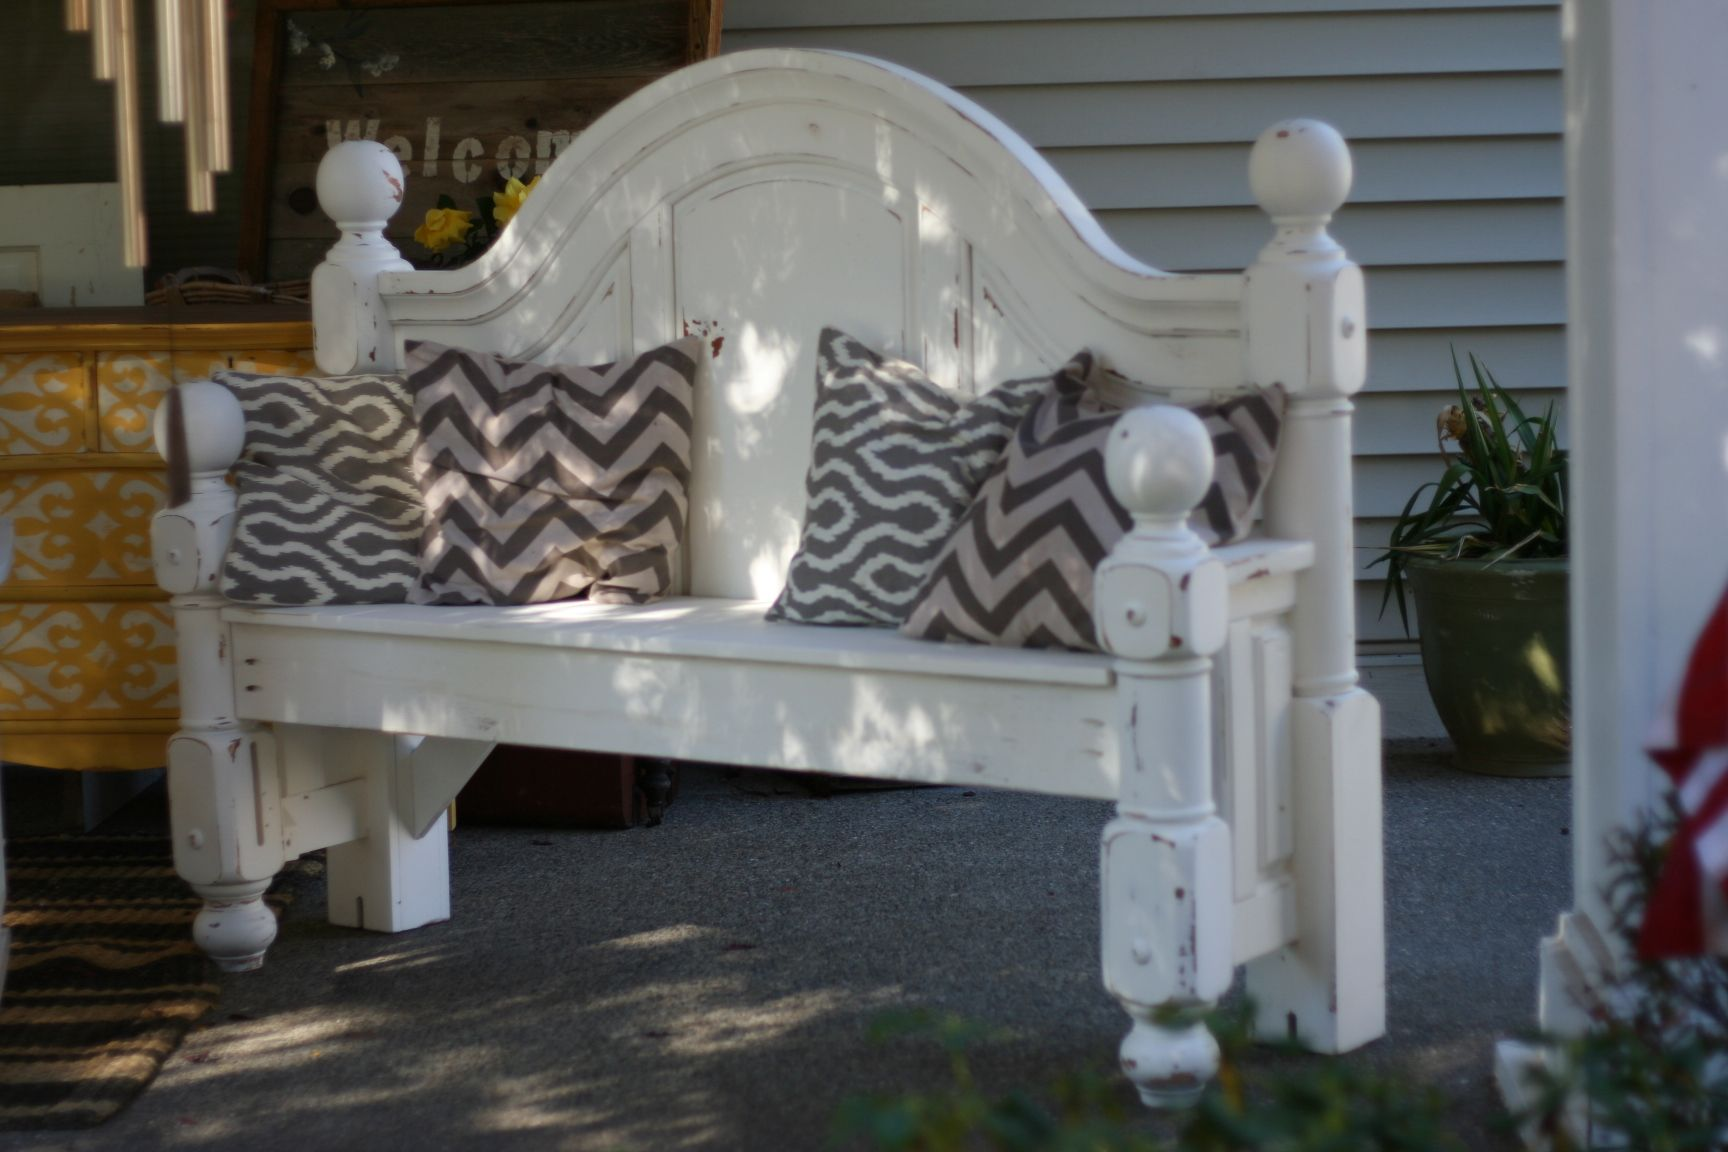 Swell Bench Made From Old Queen Bed Frame Bed From Wood Bed Pdpeps Interior Chair Design Pdpepsorg